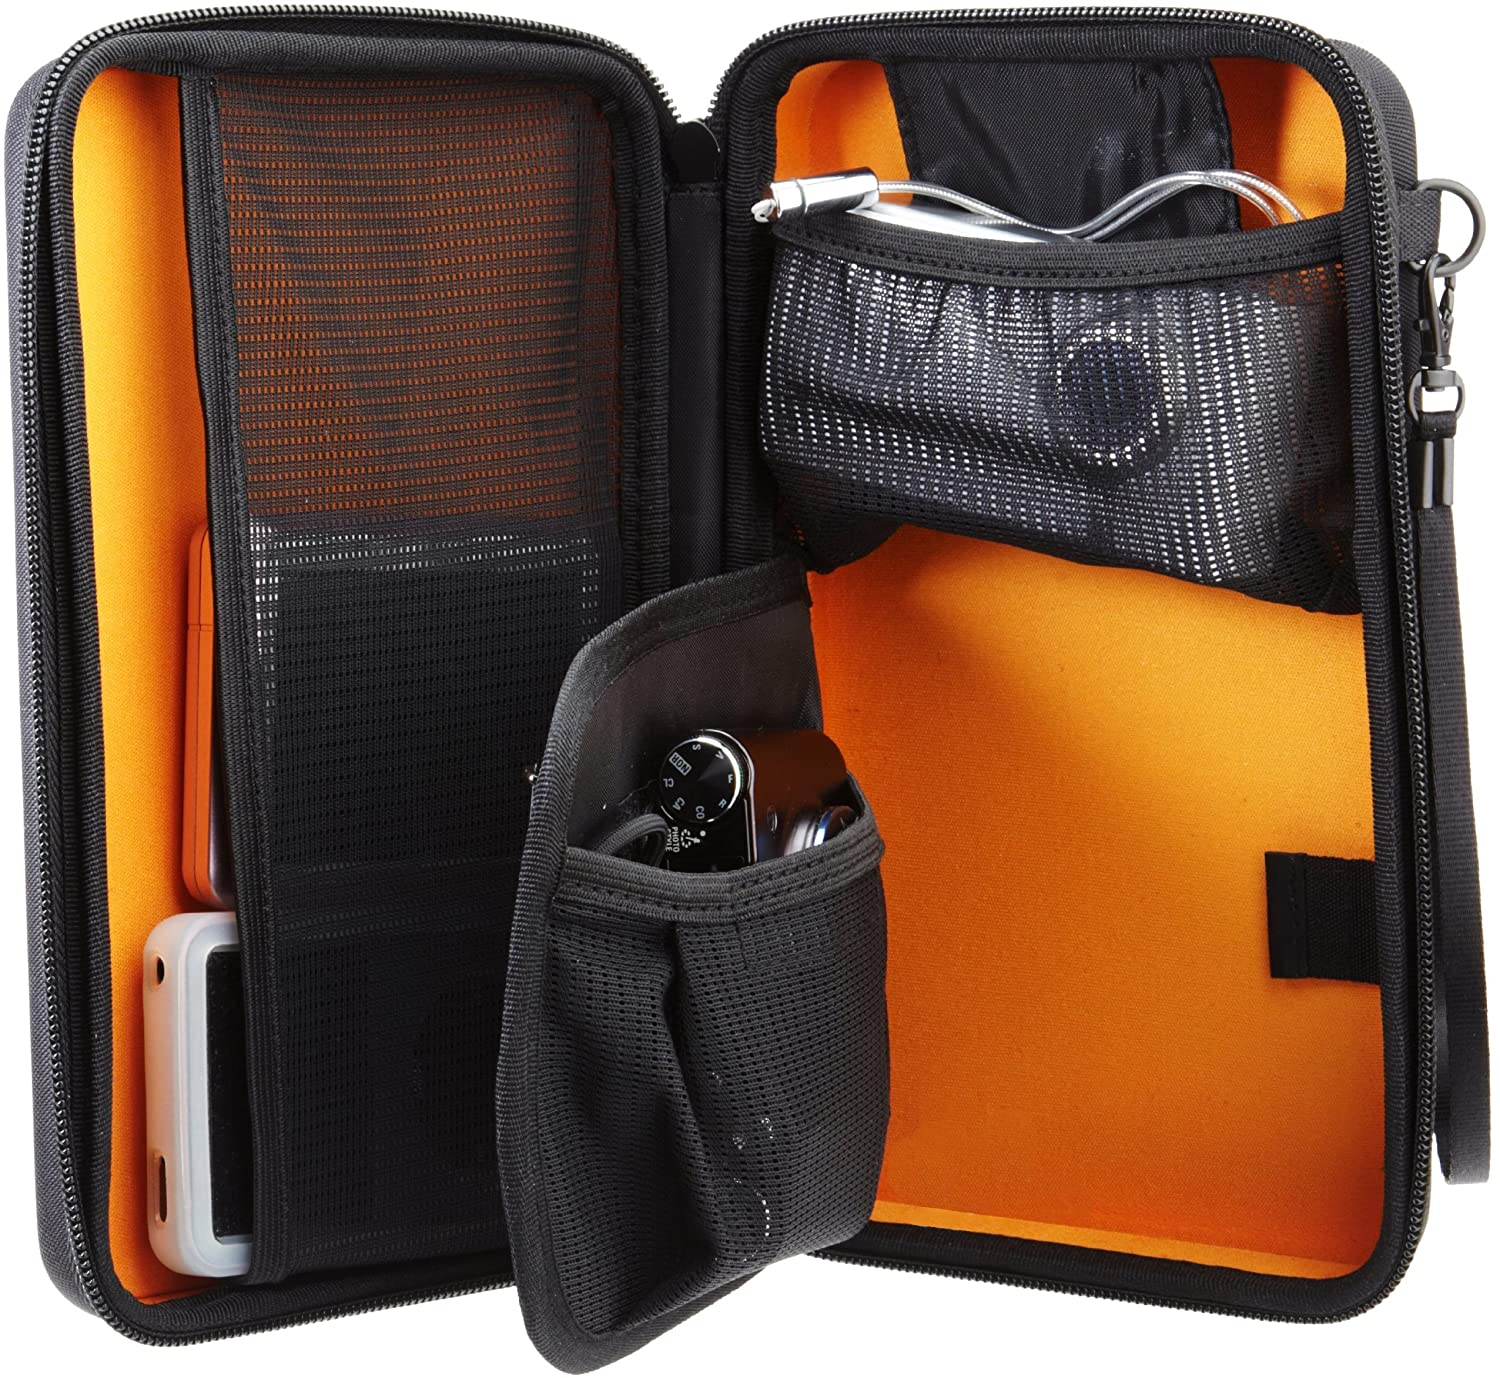 AmazonBasics Universal Travel Case for Small Electronics and Accessories for A Stress-Free Memorial Day Weekend Camping Trip